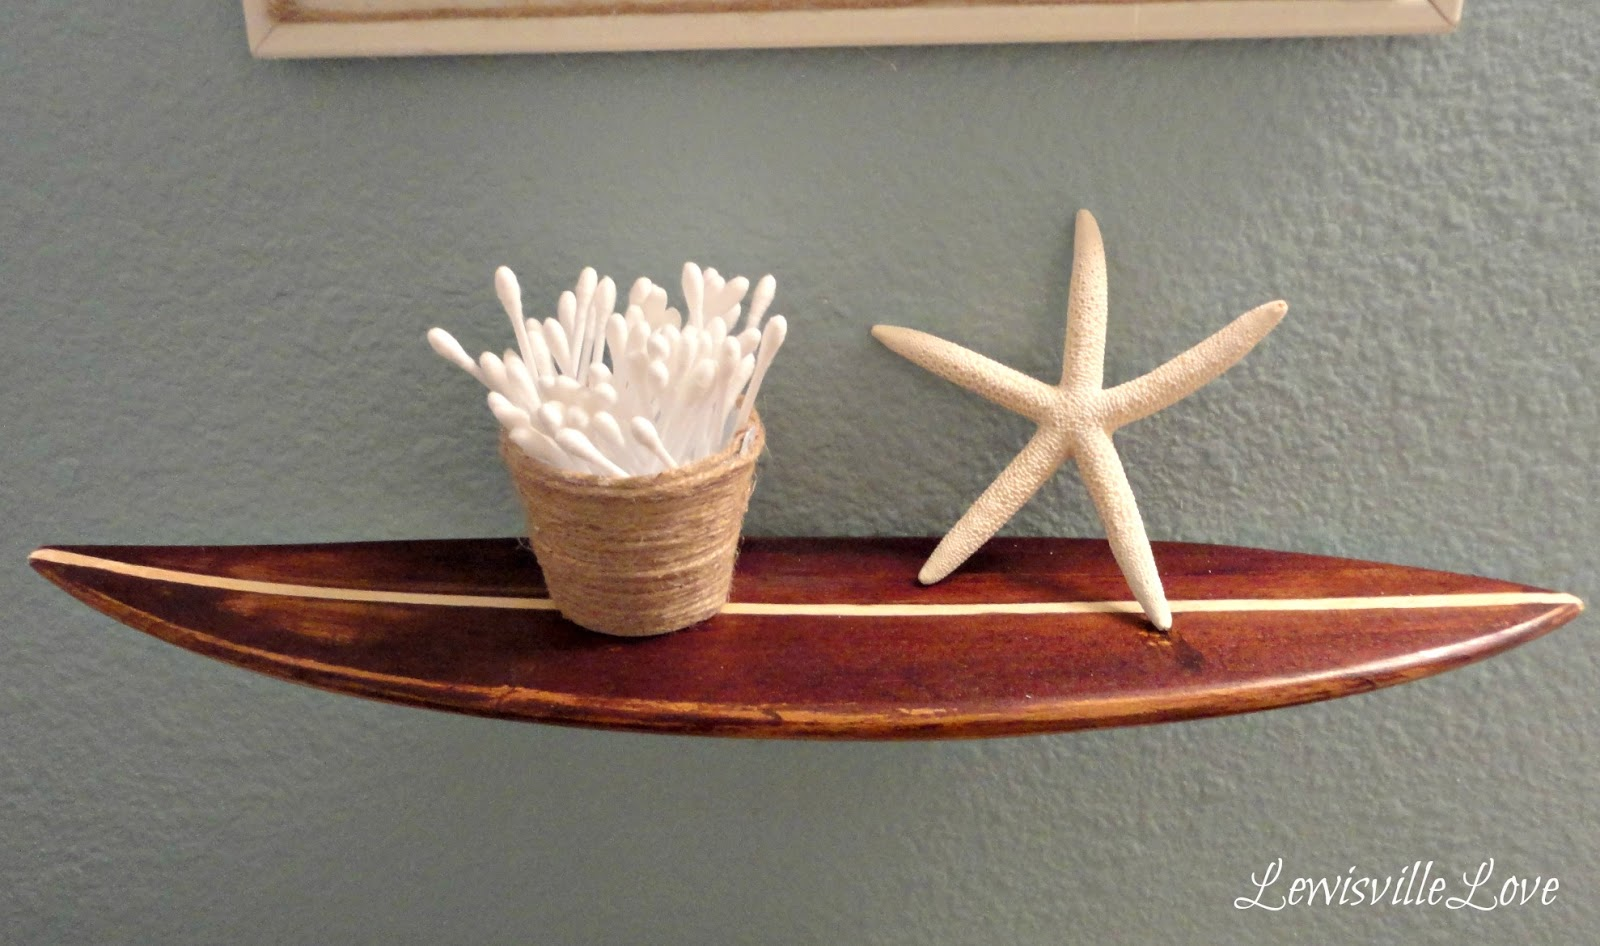 Lewisville Love: Surf Board Shelf for the Beach Bathroom